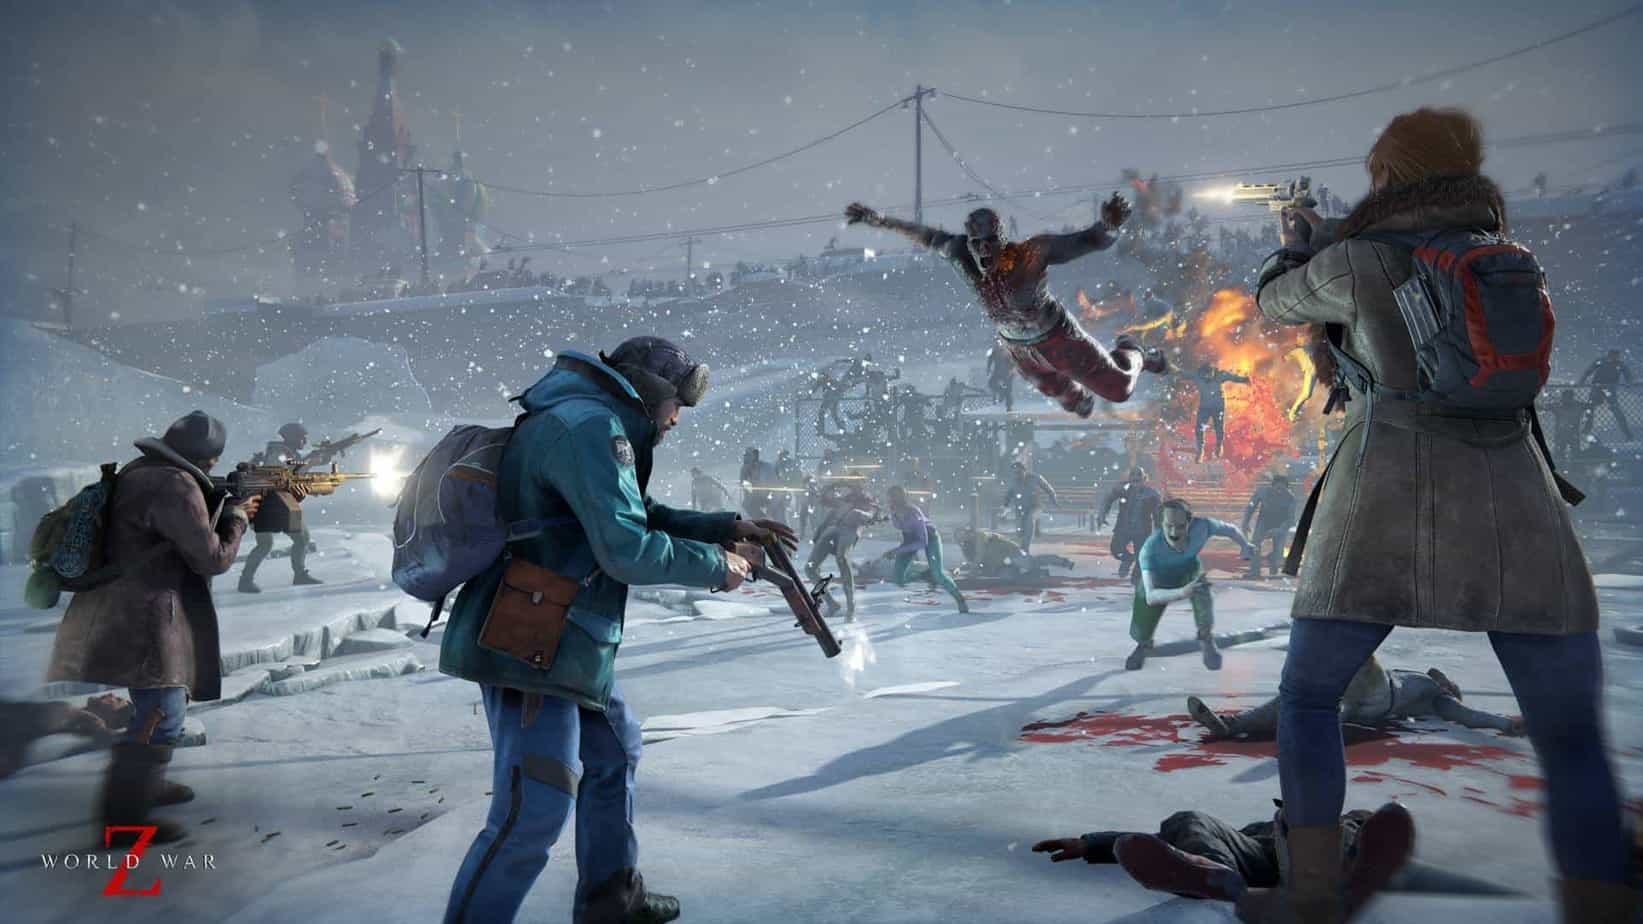 World War Z is a four-player co-op third person shooter within a zombie apocalypse